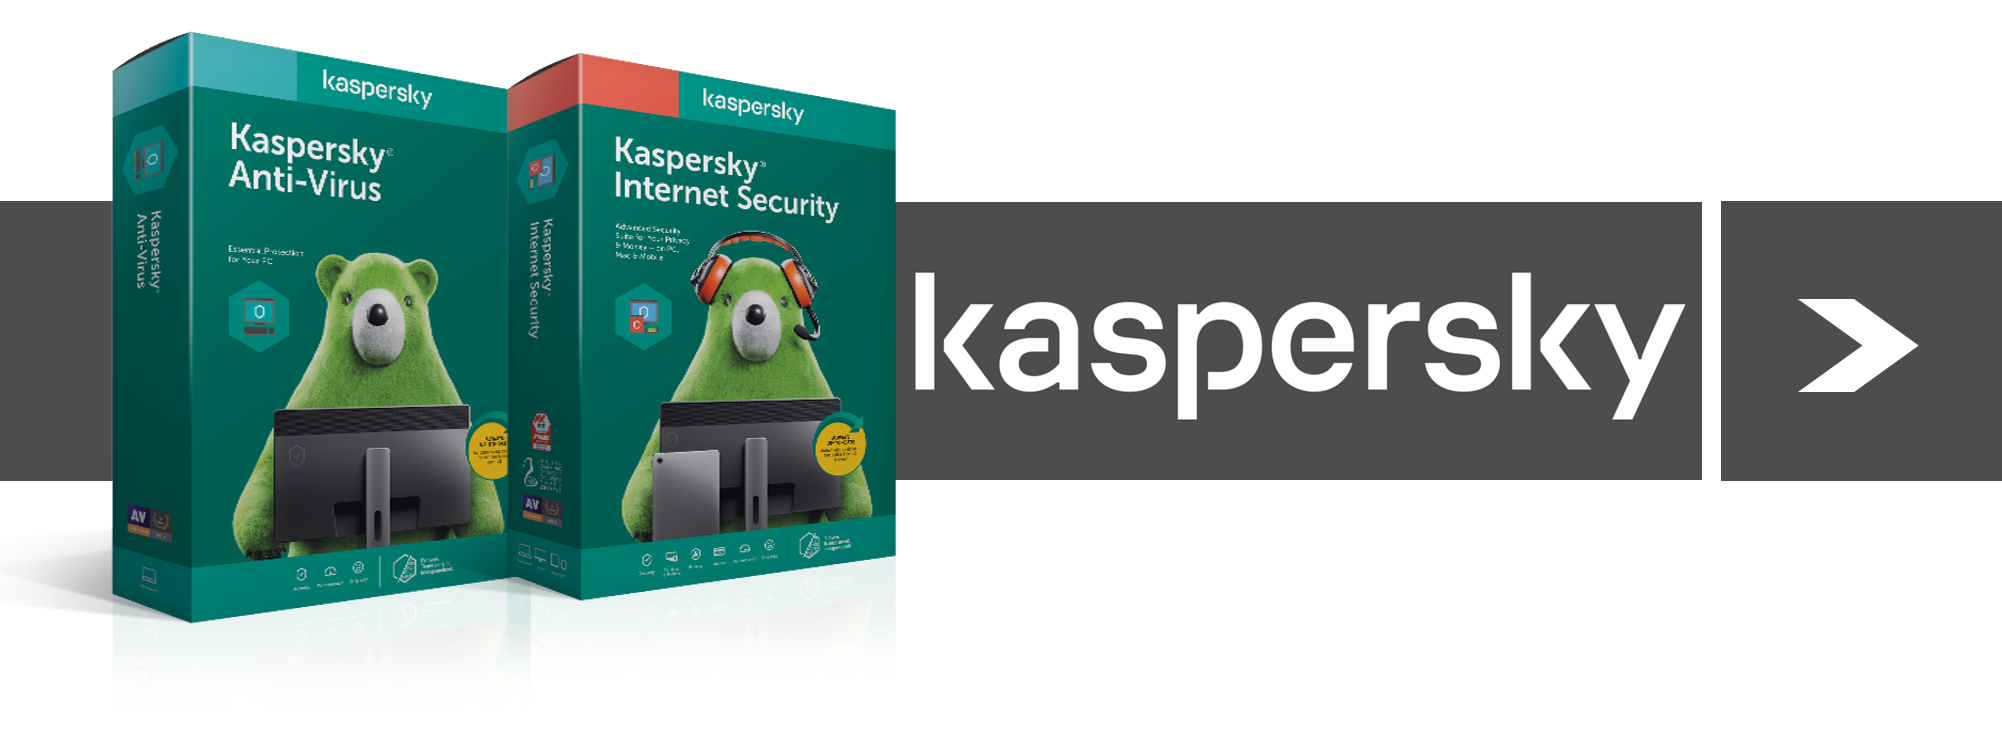 Kaspersky Products